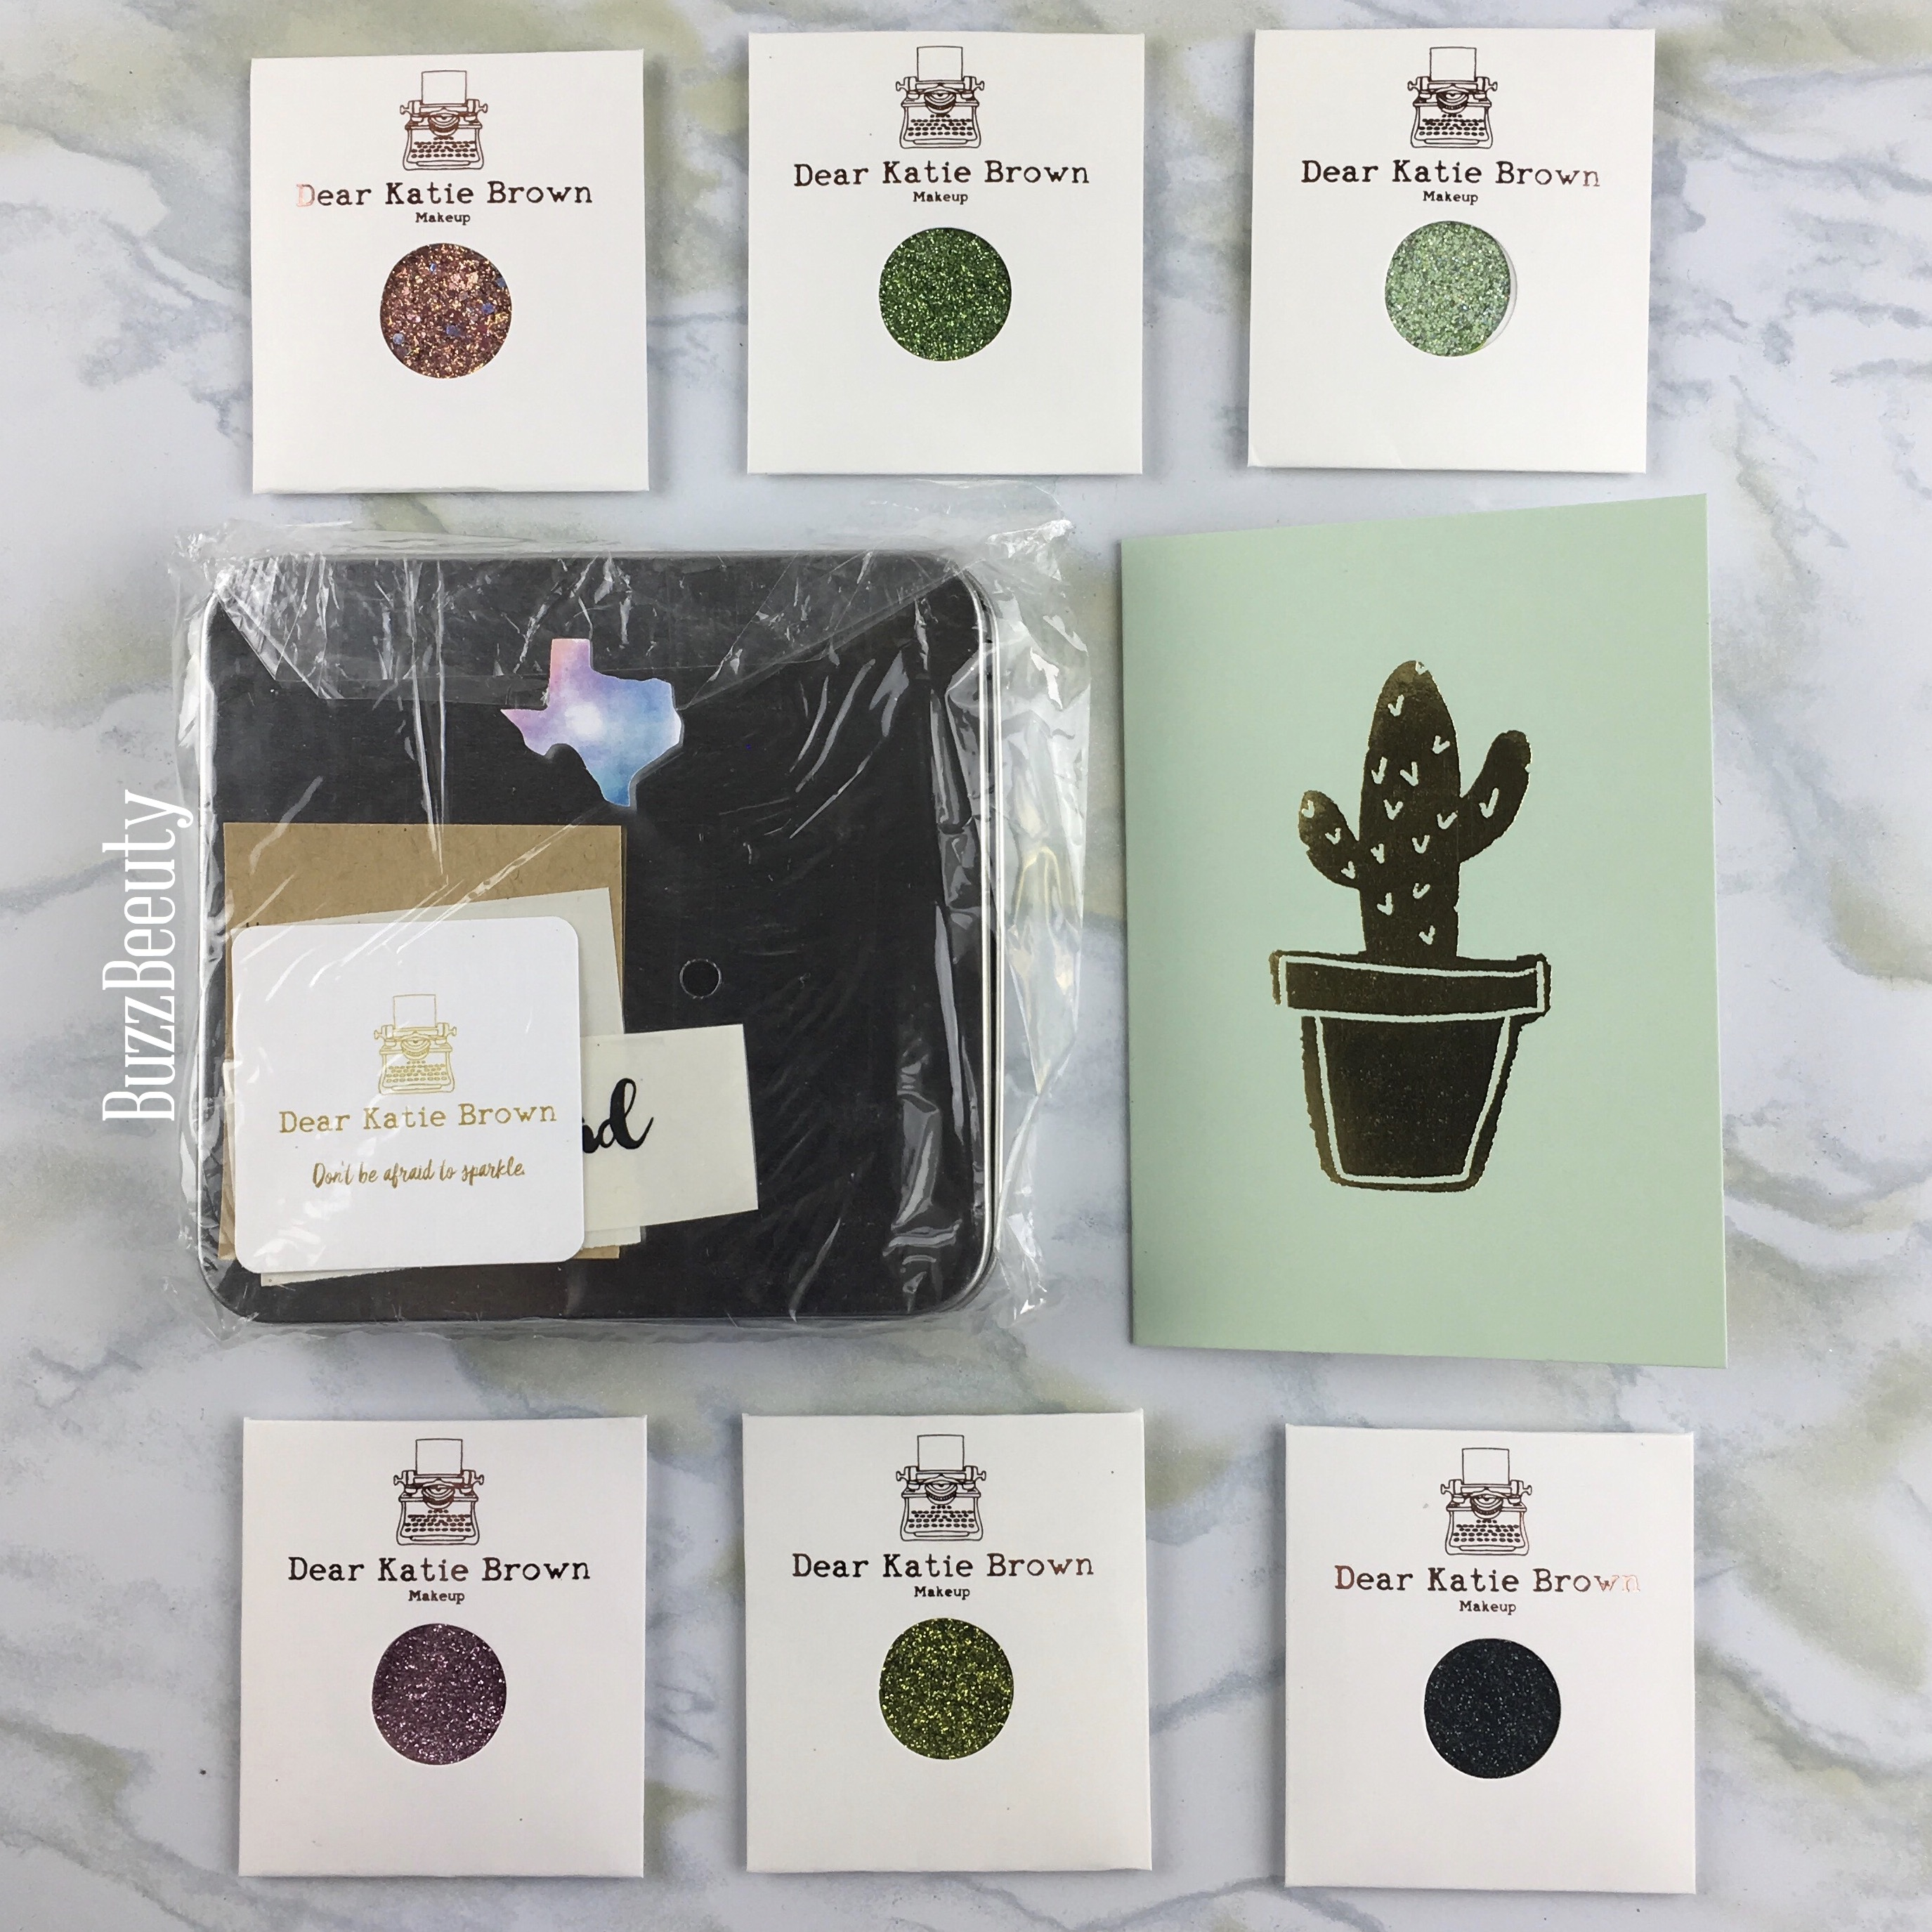 Dear Katie Brown Pressed Glitter Packaging and Palette